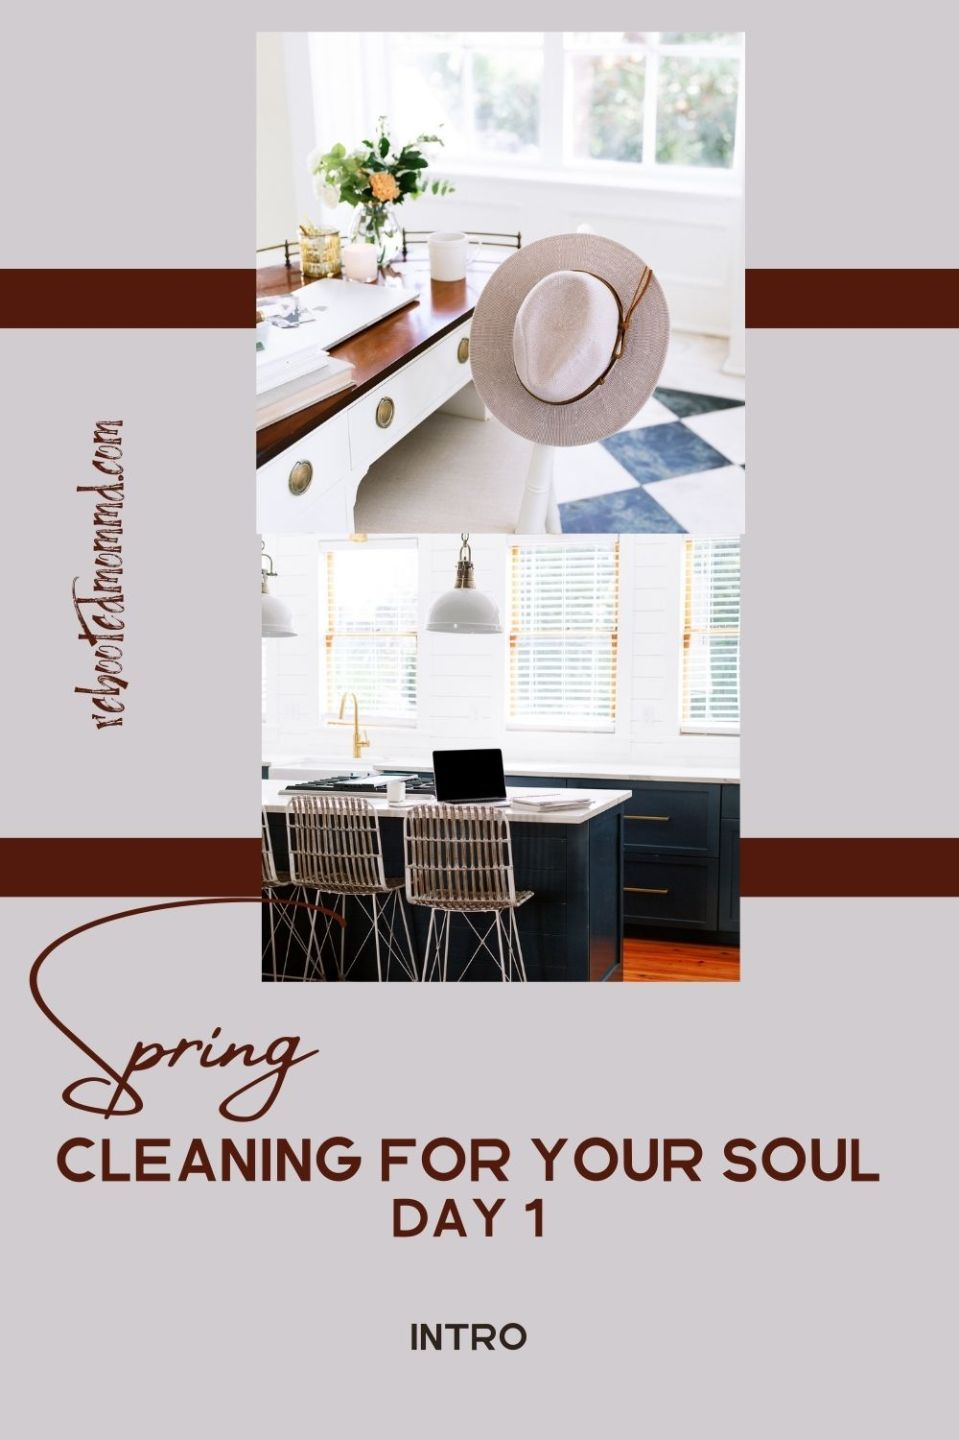 Spring Cleaning for Your Soul, Day 1: Freshen Up Your Perspective